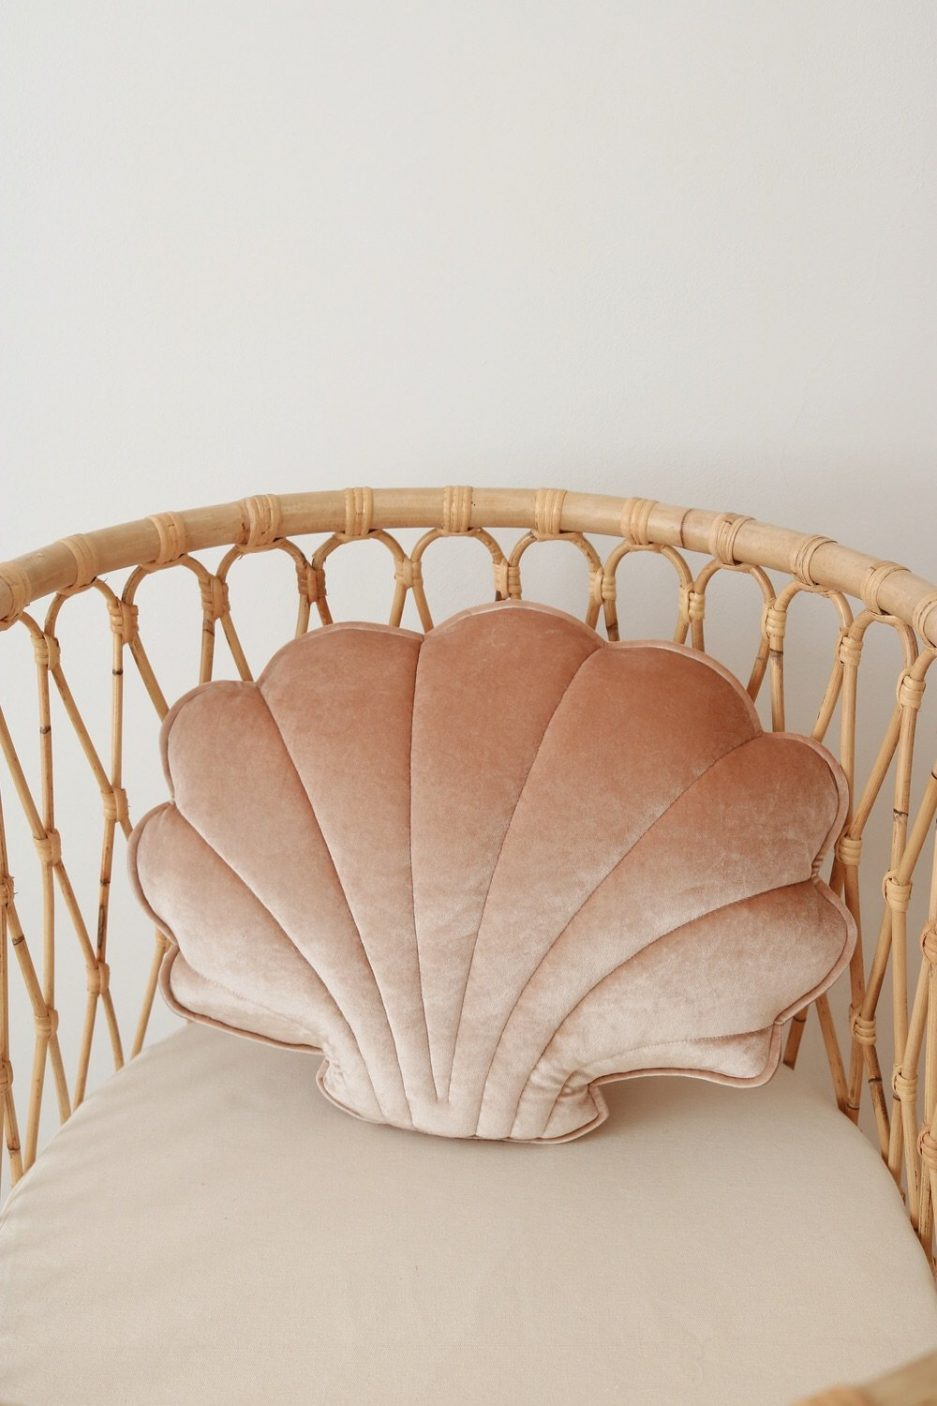 Coussin coquillage, Beige perle, Moi Mili